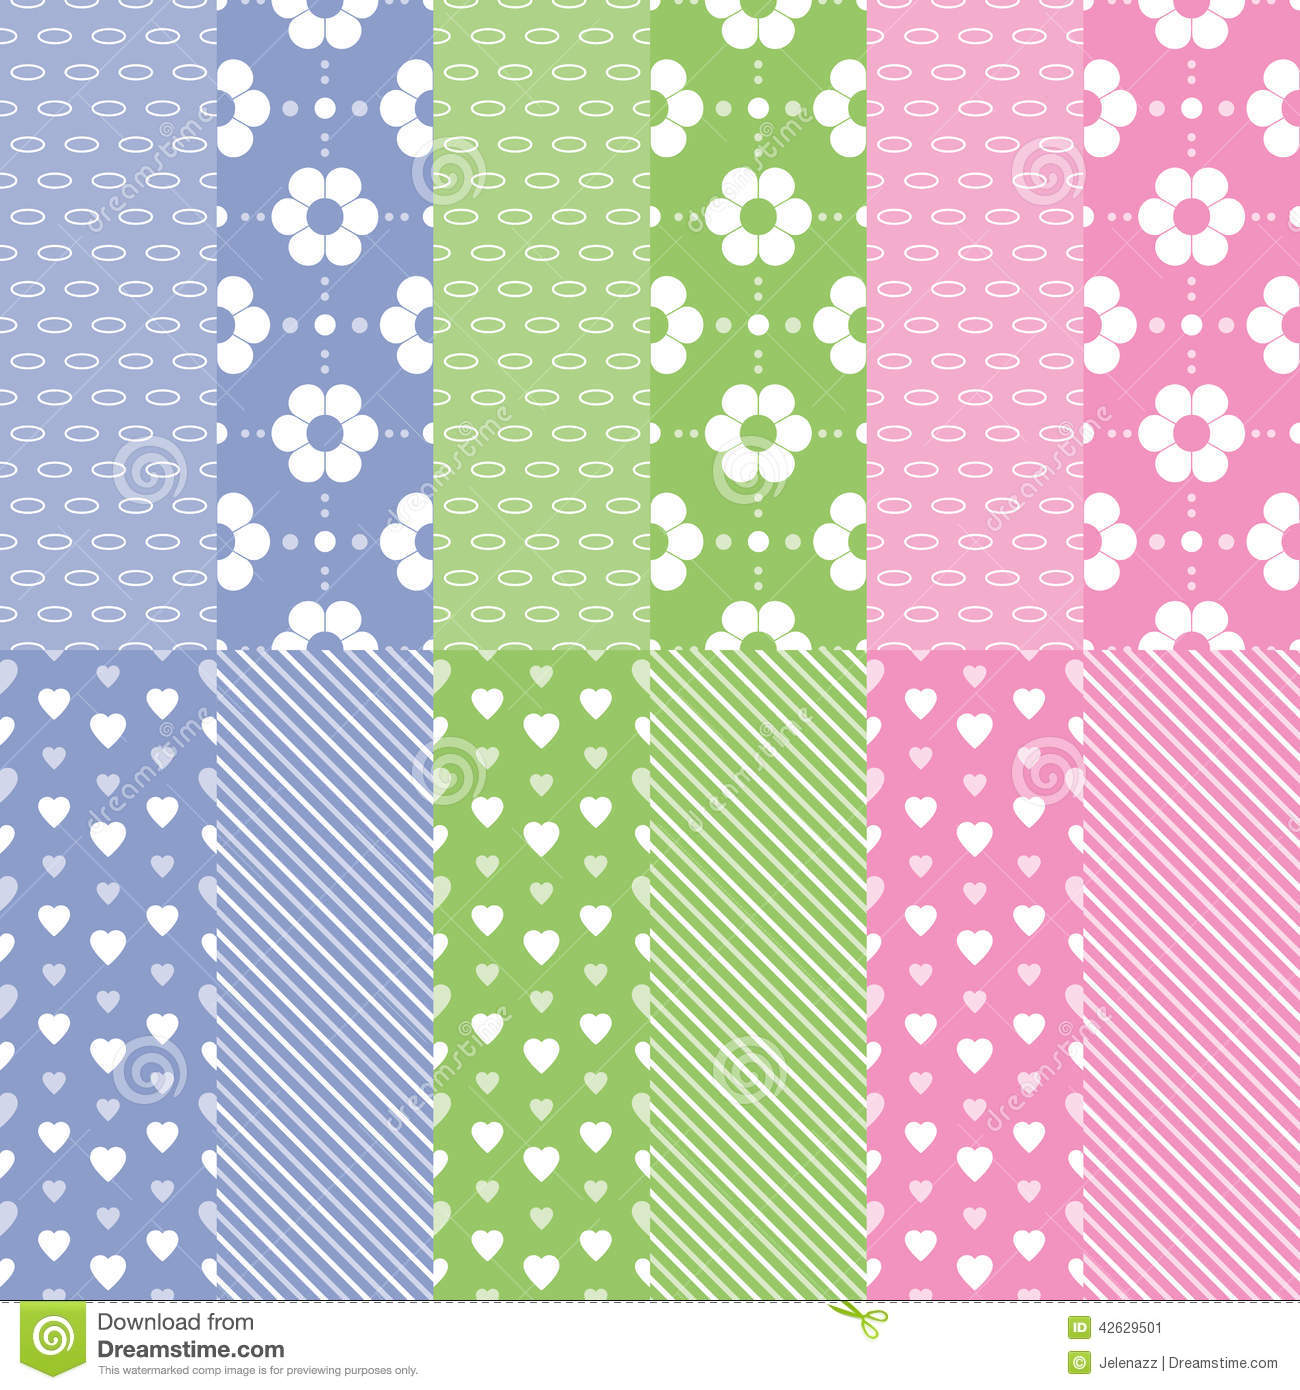 Cute Baby Girl And Boy Pattern Collection Stock Vector